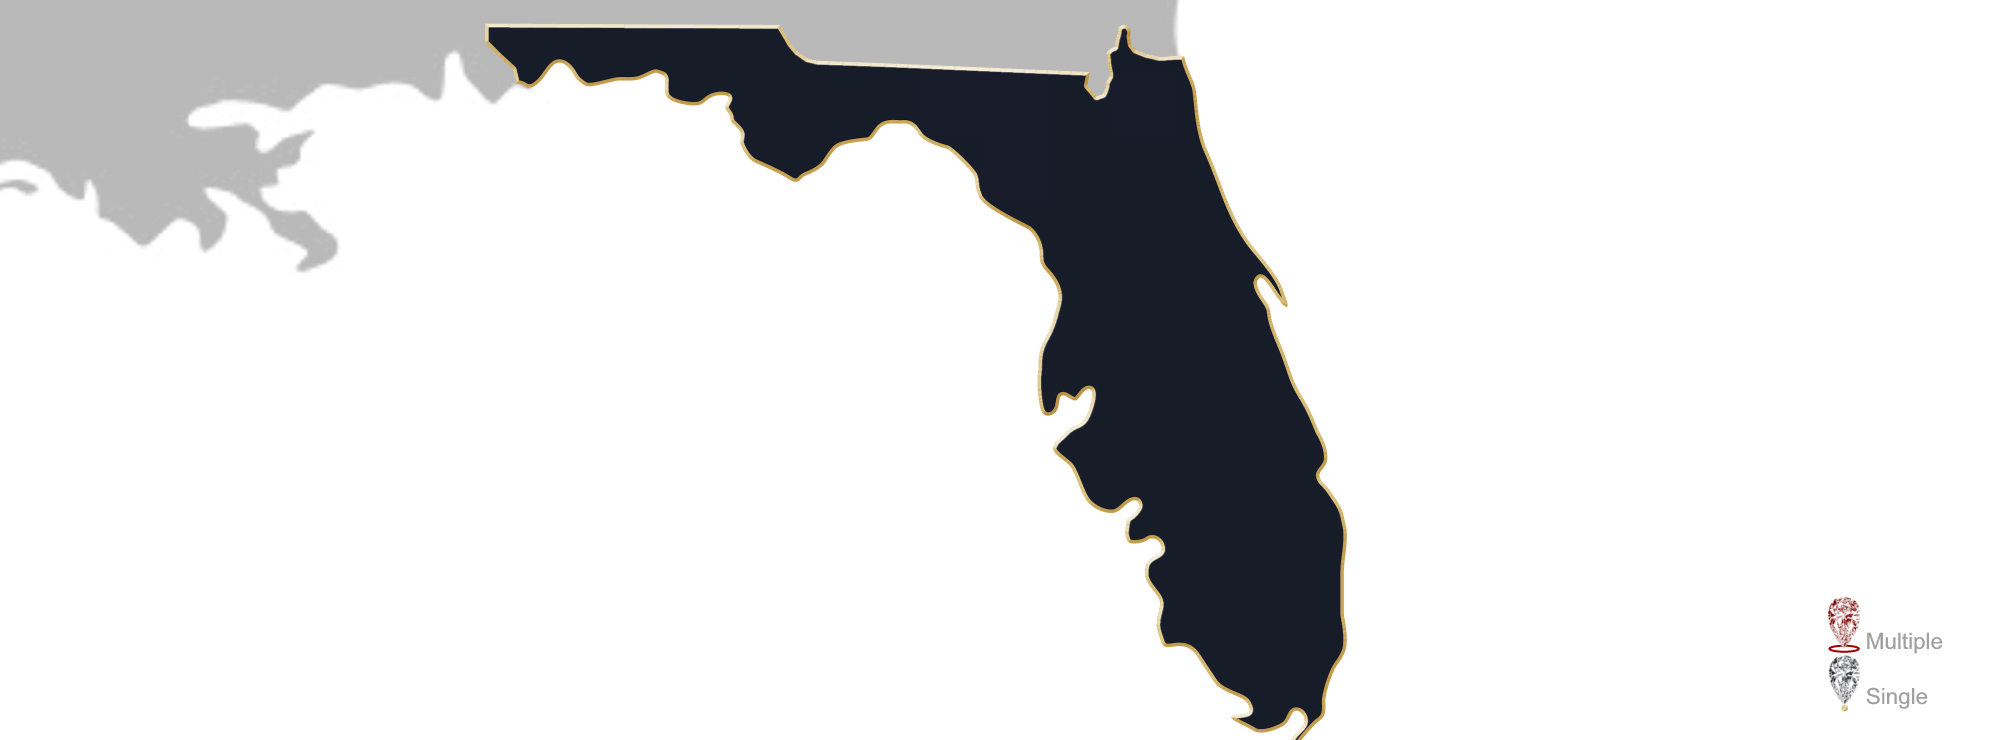 Map showing location of Jewelry Appraisers in Florida